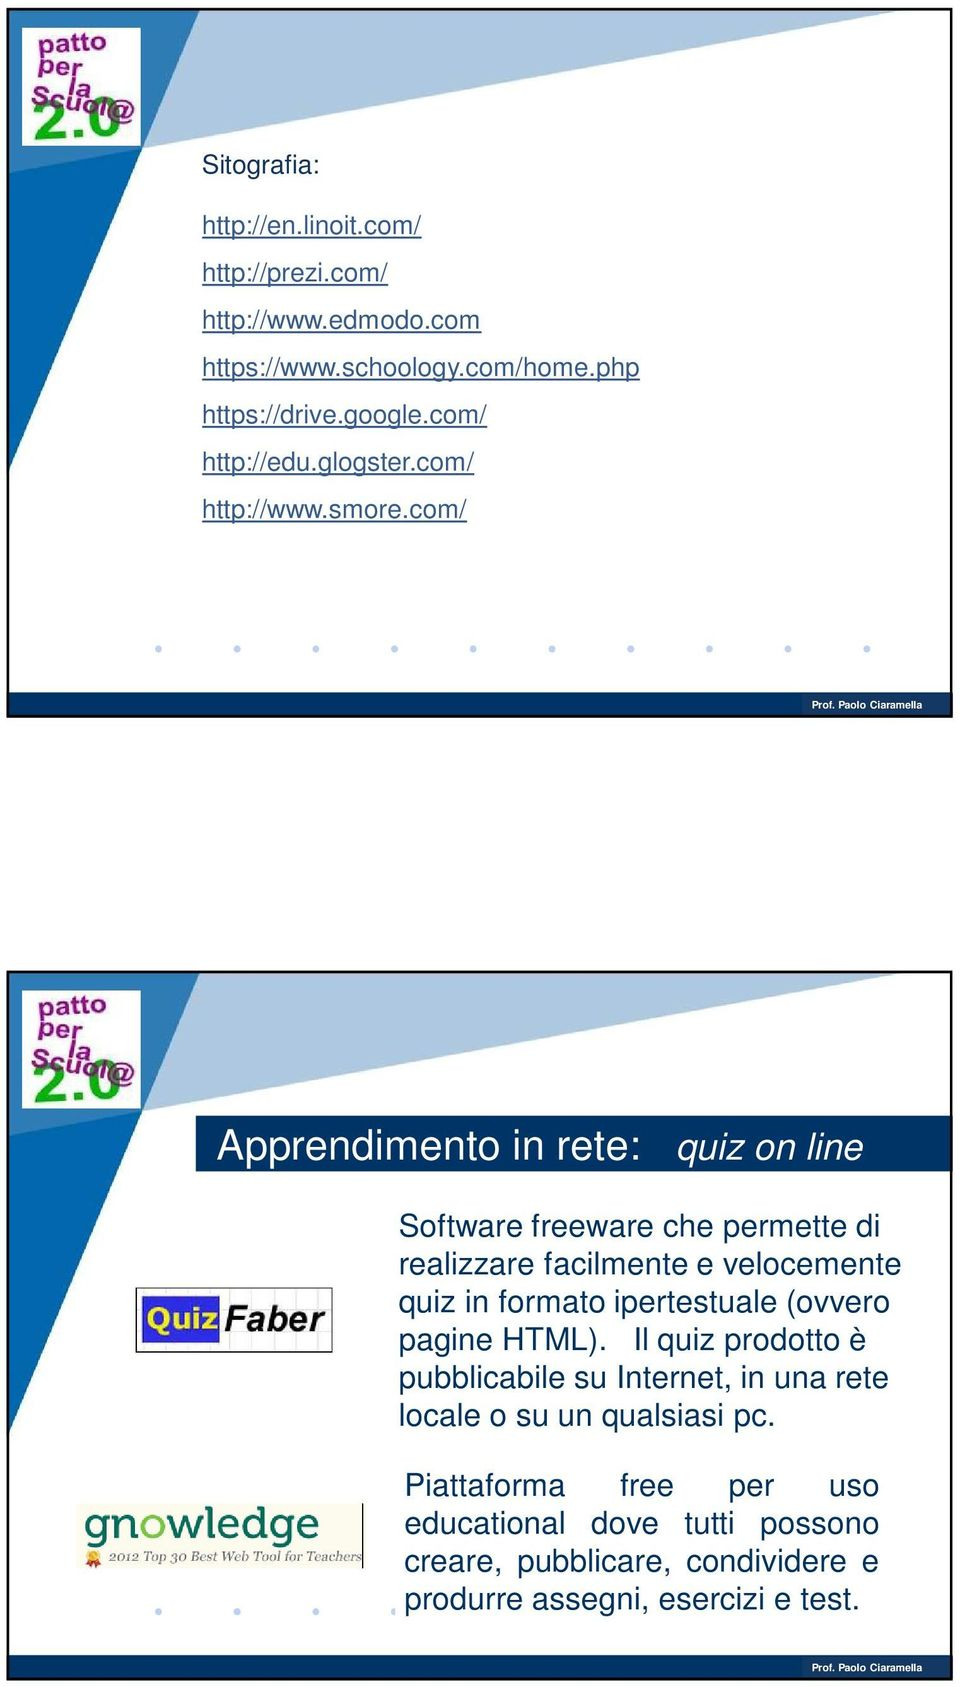 com/ Apprendimento in rete: quiz on line Software freeware che permette di realizzare facilmente e velocemente quiz in formato